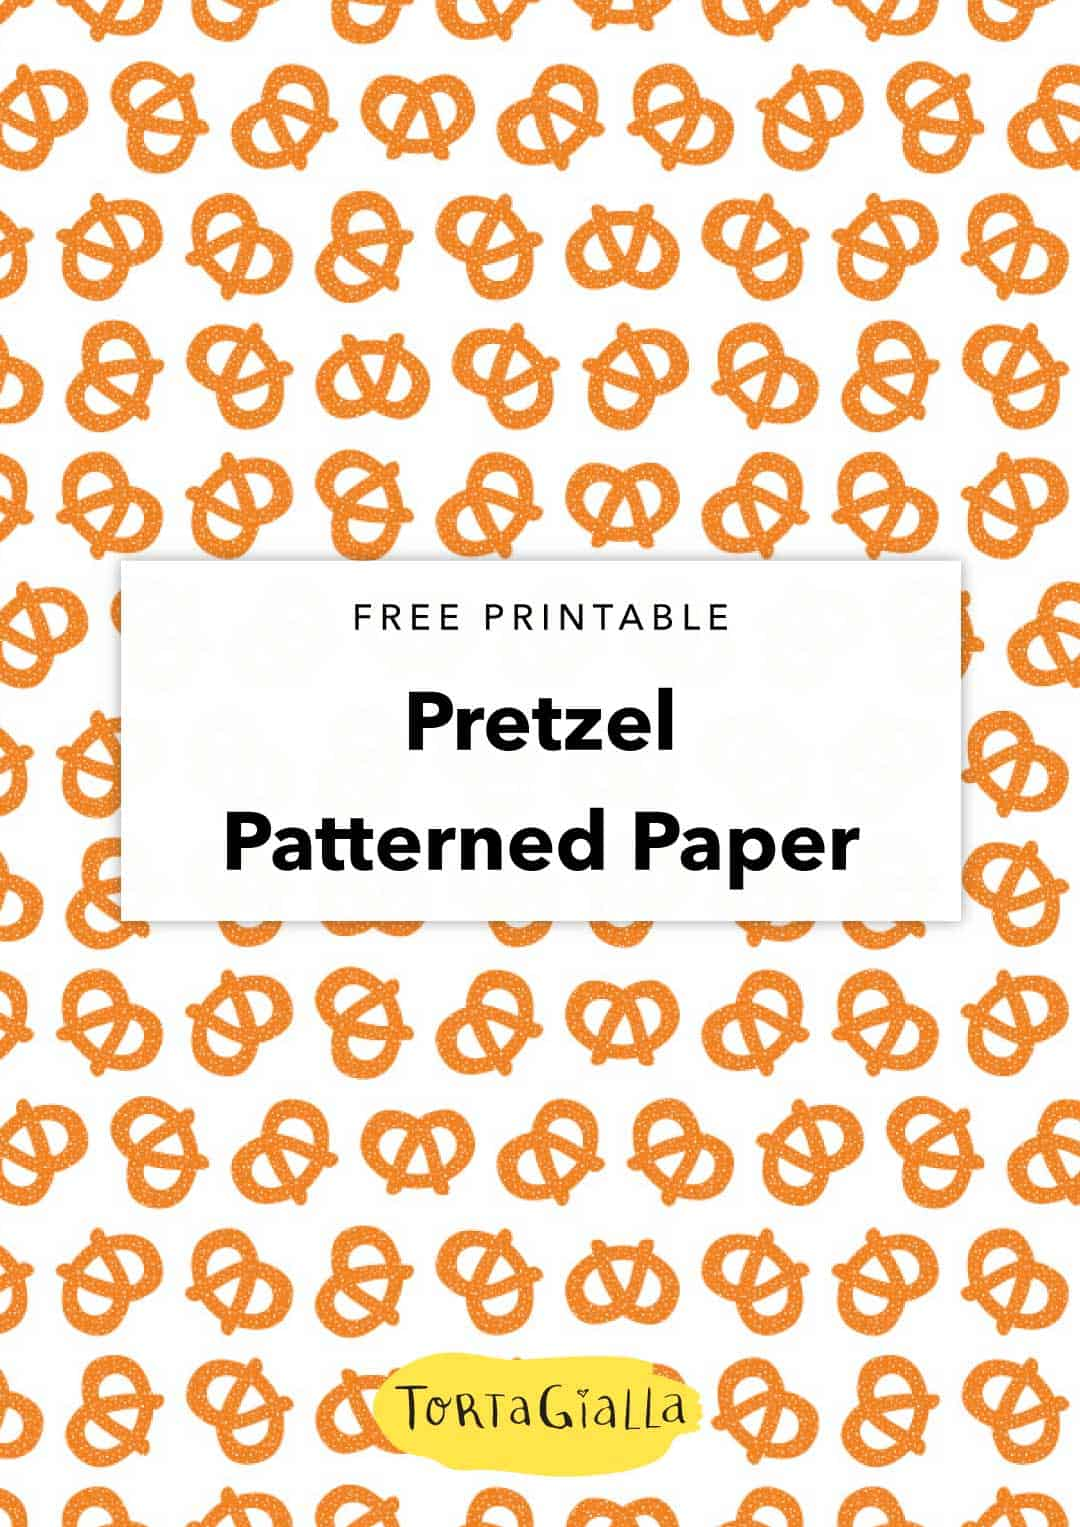 For the love of good dough and salty breads, here's a pretzel pattern paper for scrapbooking, papercrafitng and DIY projects.